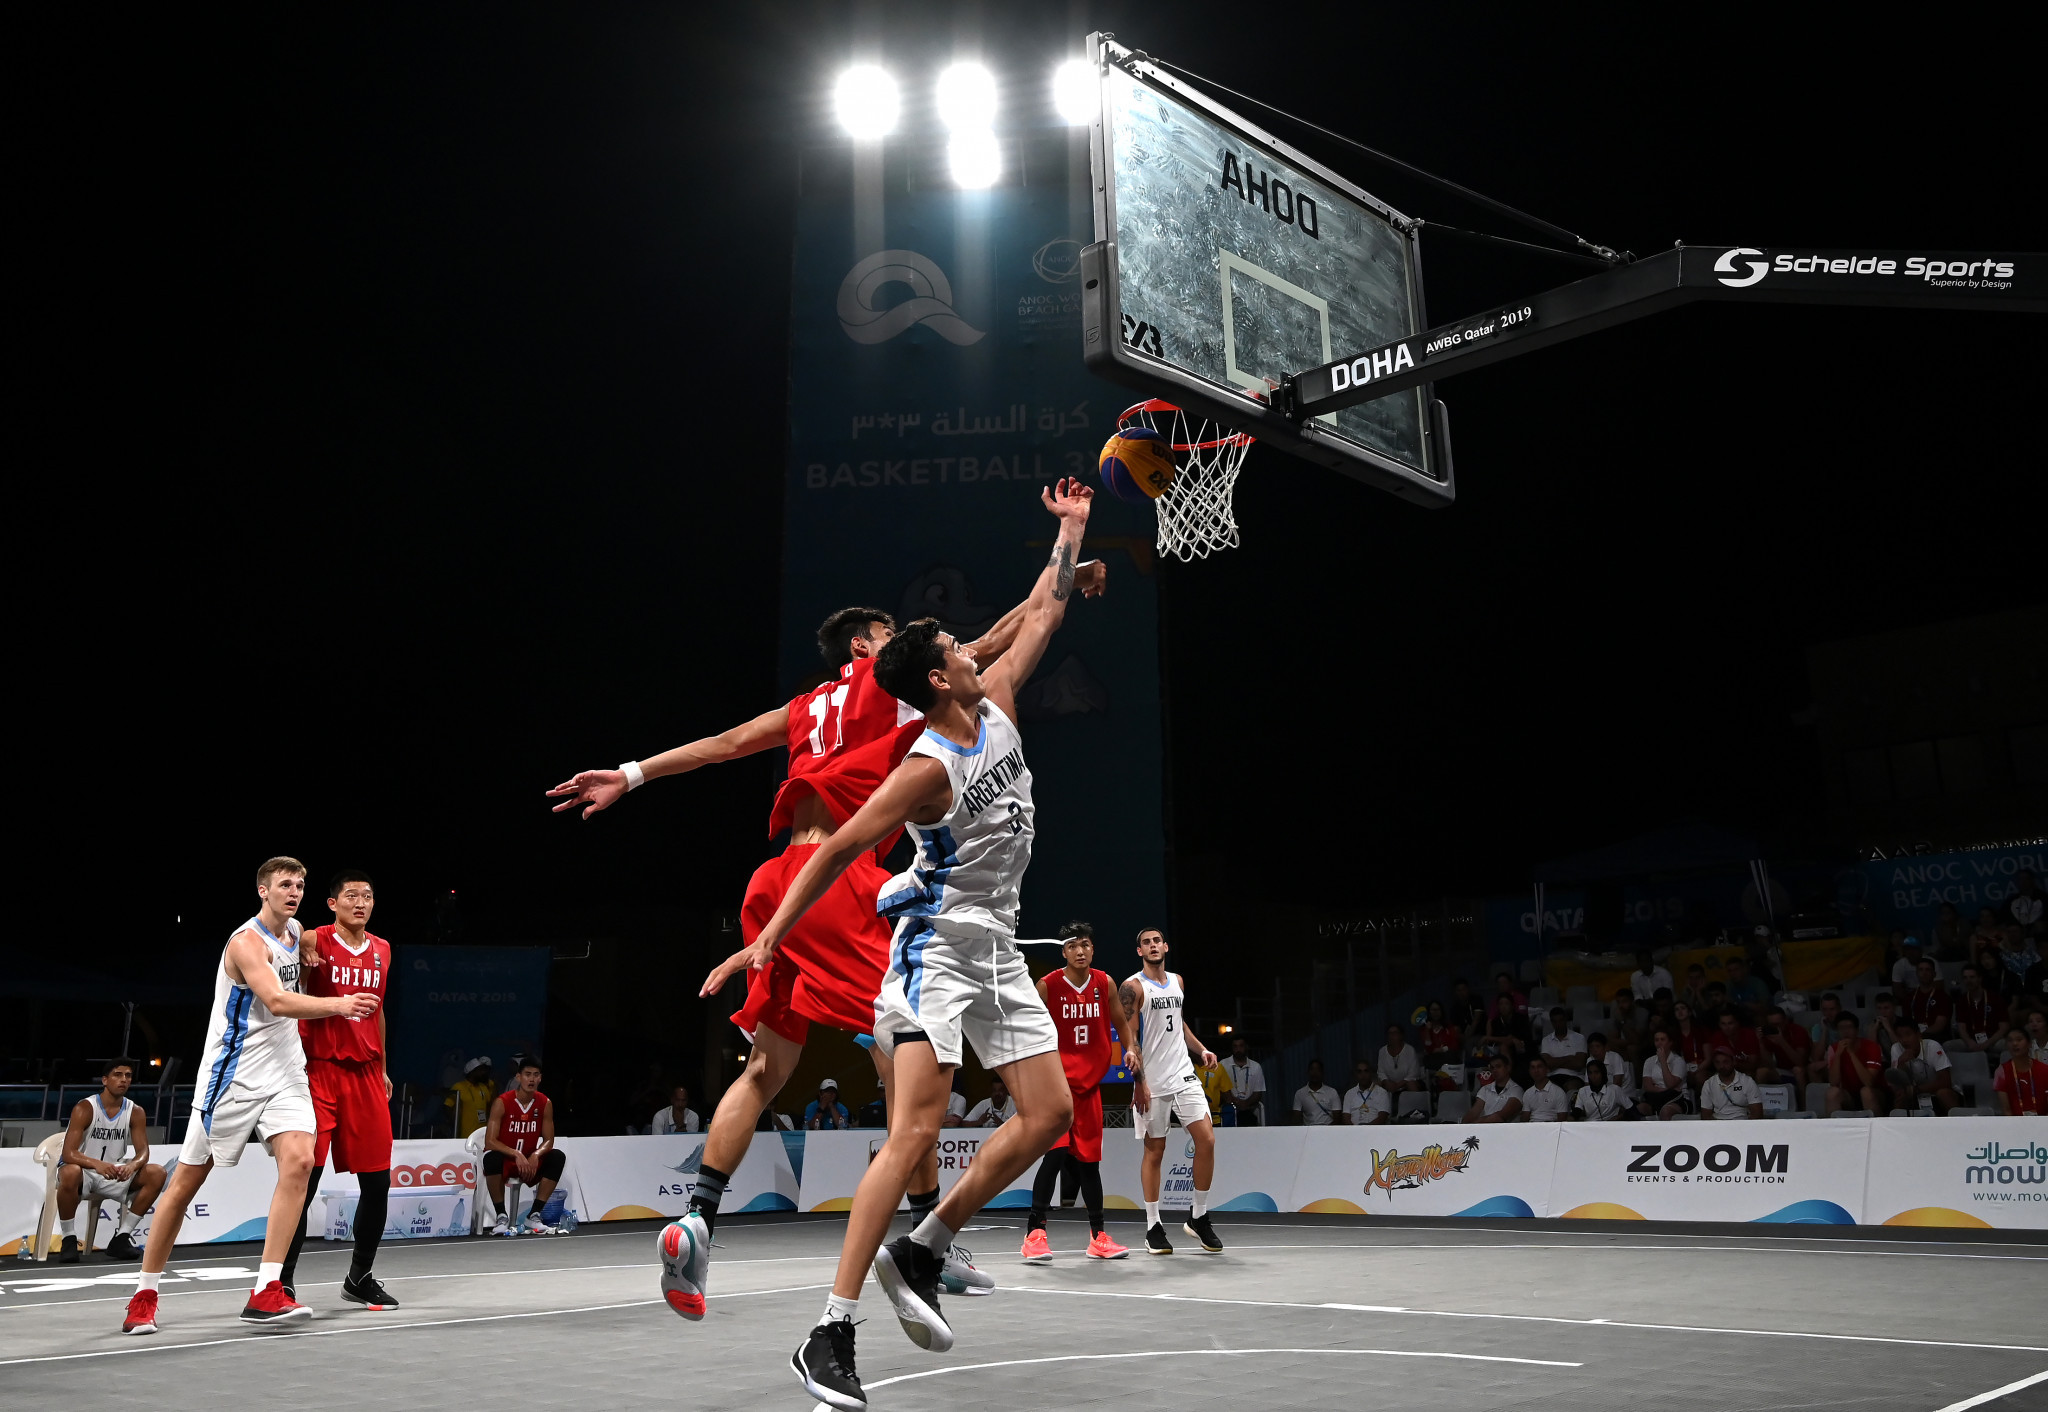 3x3 basketball has quickly become a staple of multi-sport events ©Getty Images